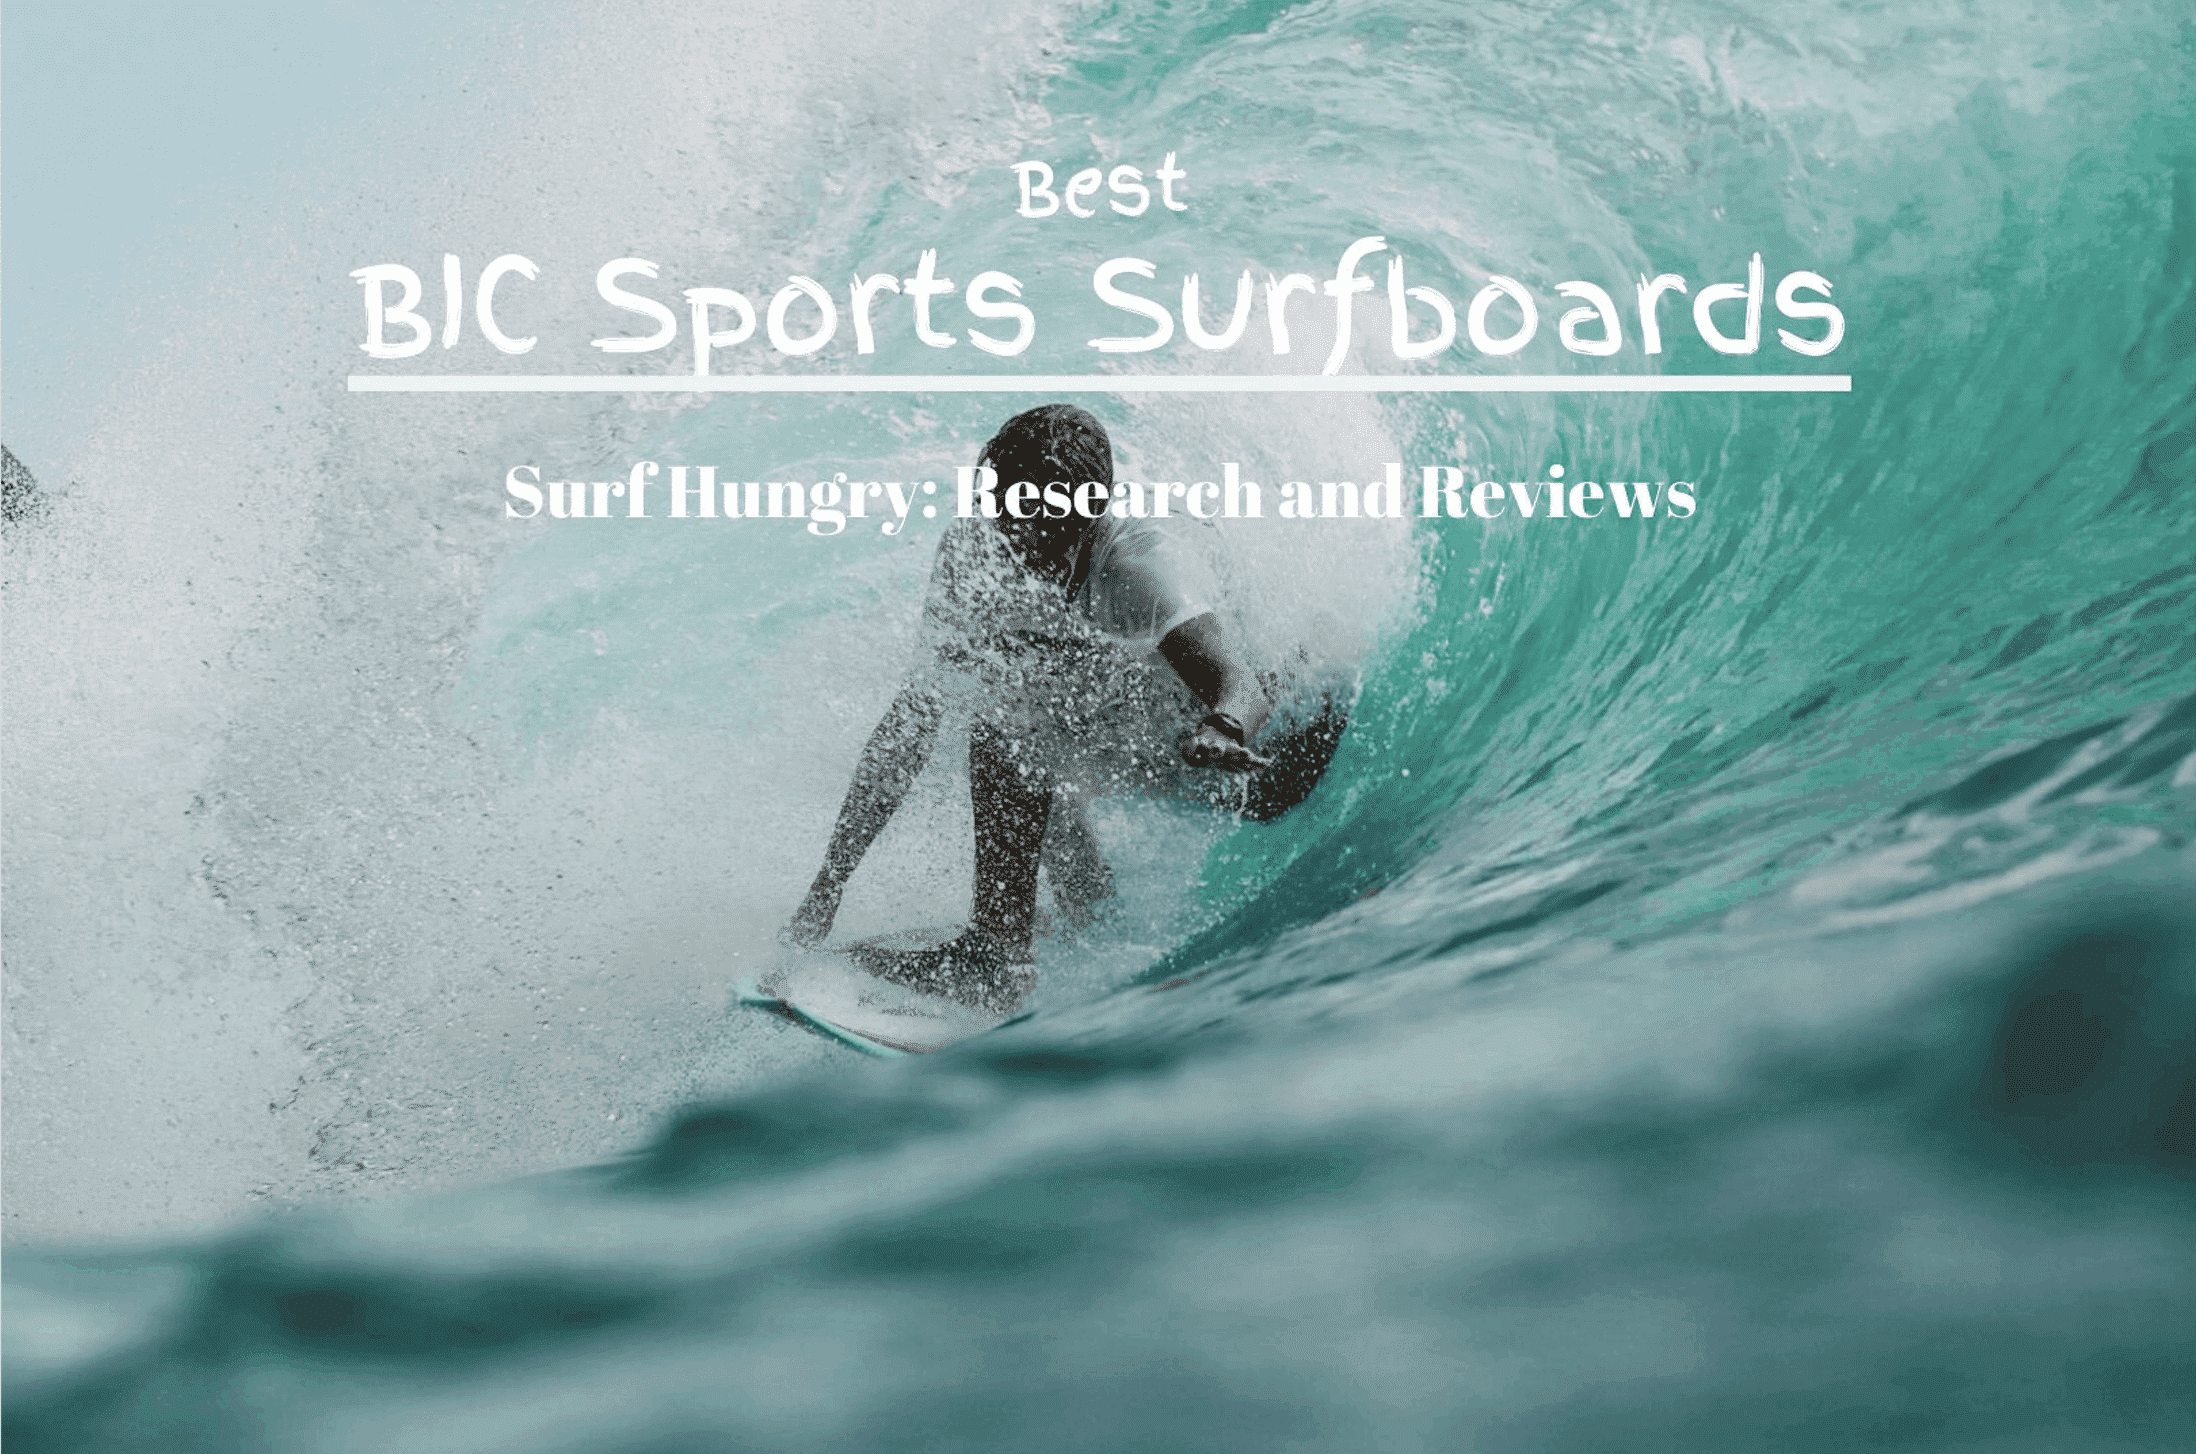 BIC Sports Surfboards